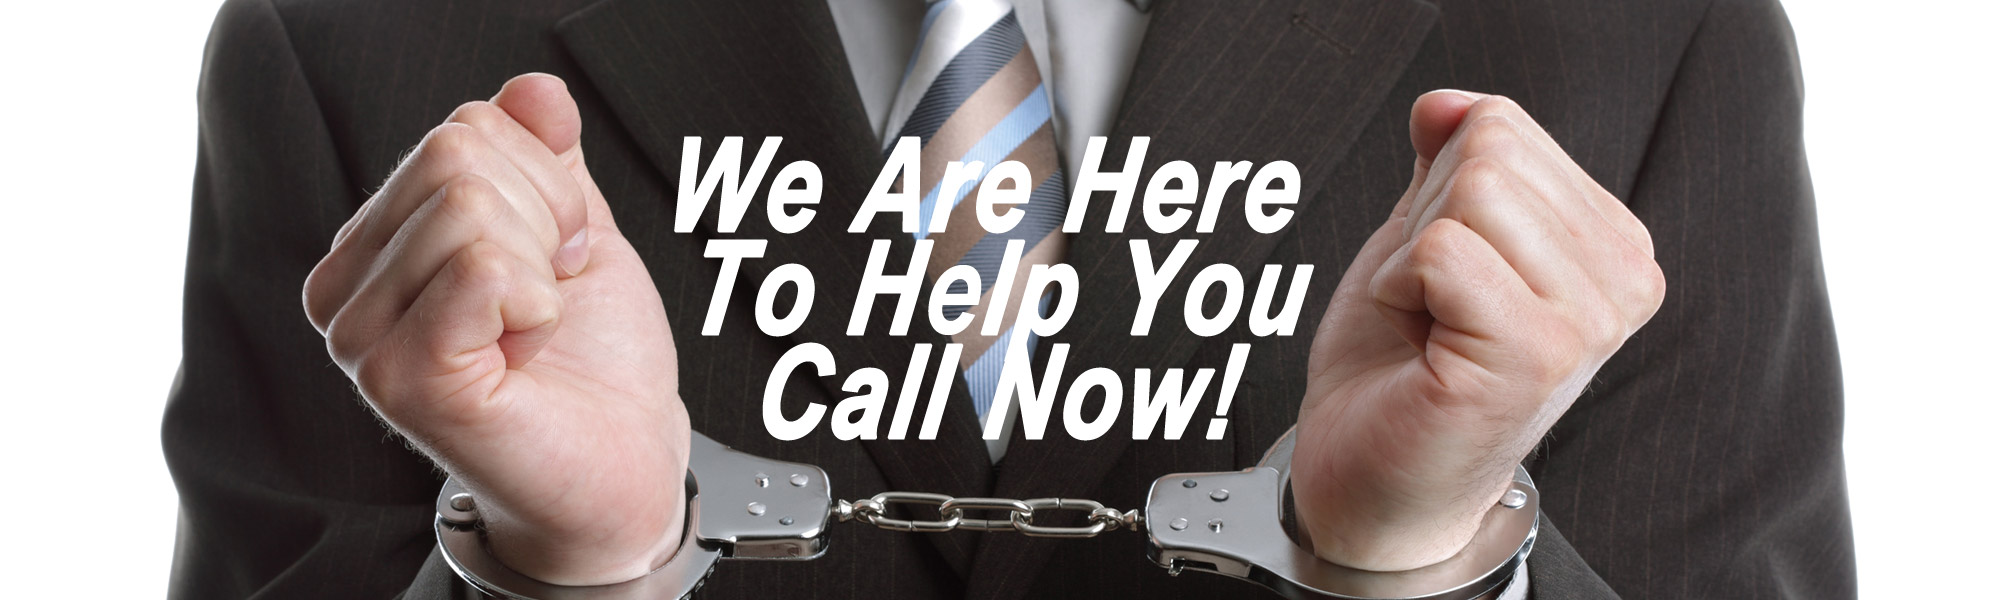 Bailed-Out-Bail-Bonds-Banner—Here-to-Help2